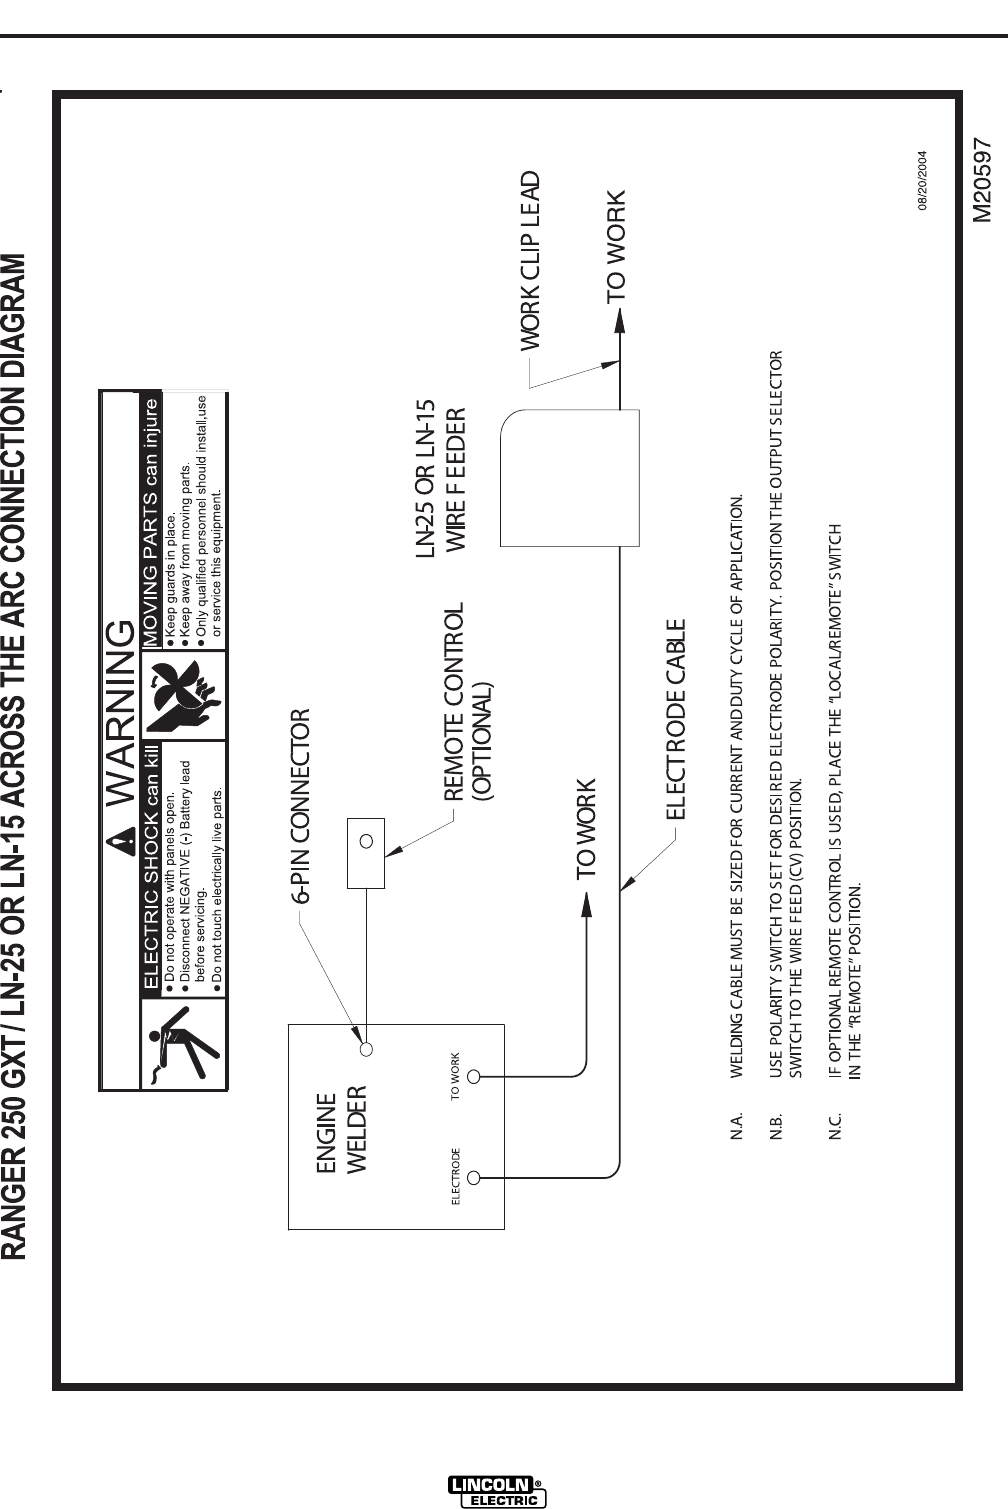 hight resolution of  lincoln electric ranger 250 gxt users manual im921 on